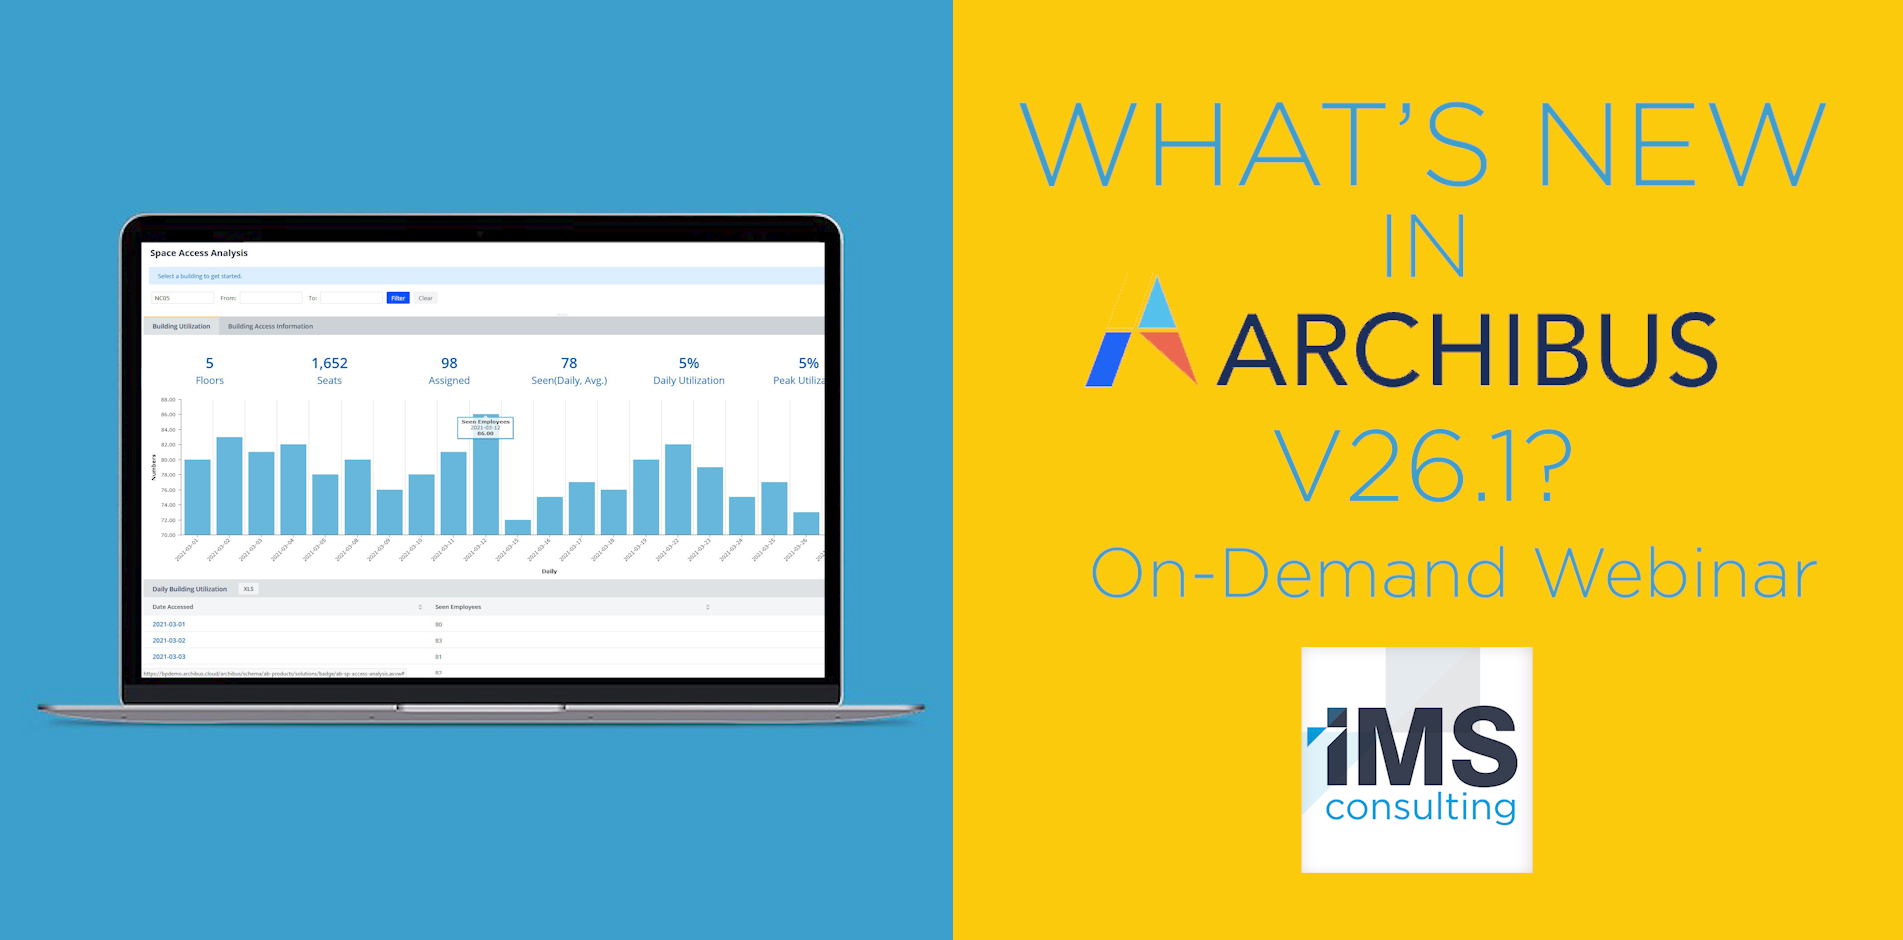 IMS Consulting - What's New in Archibus v.26.1?